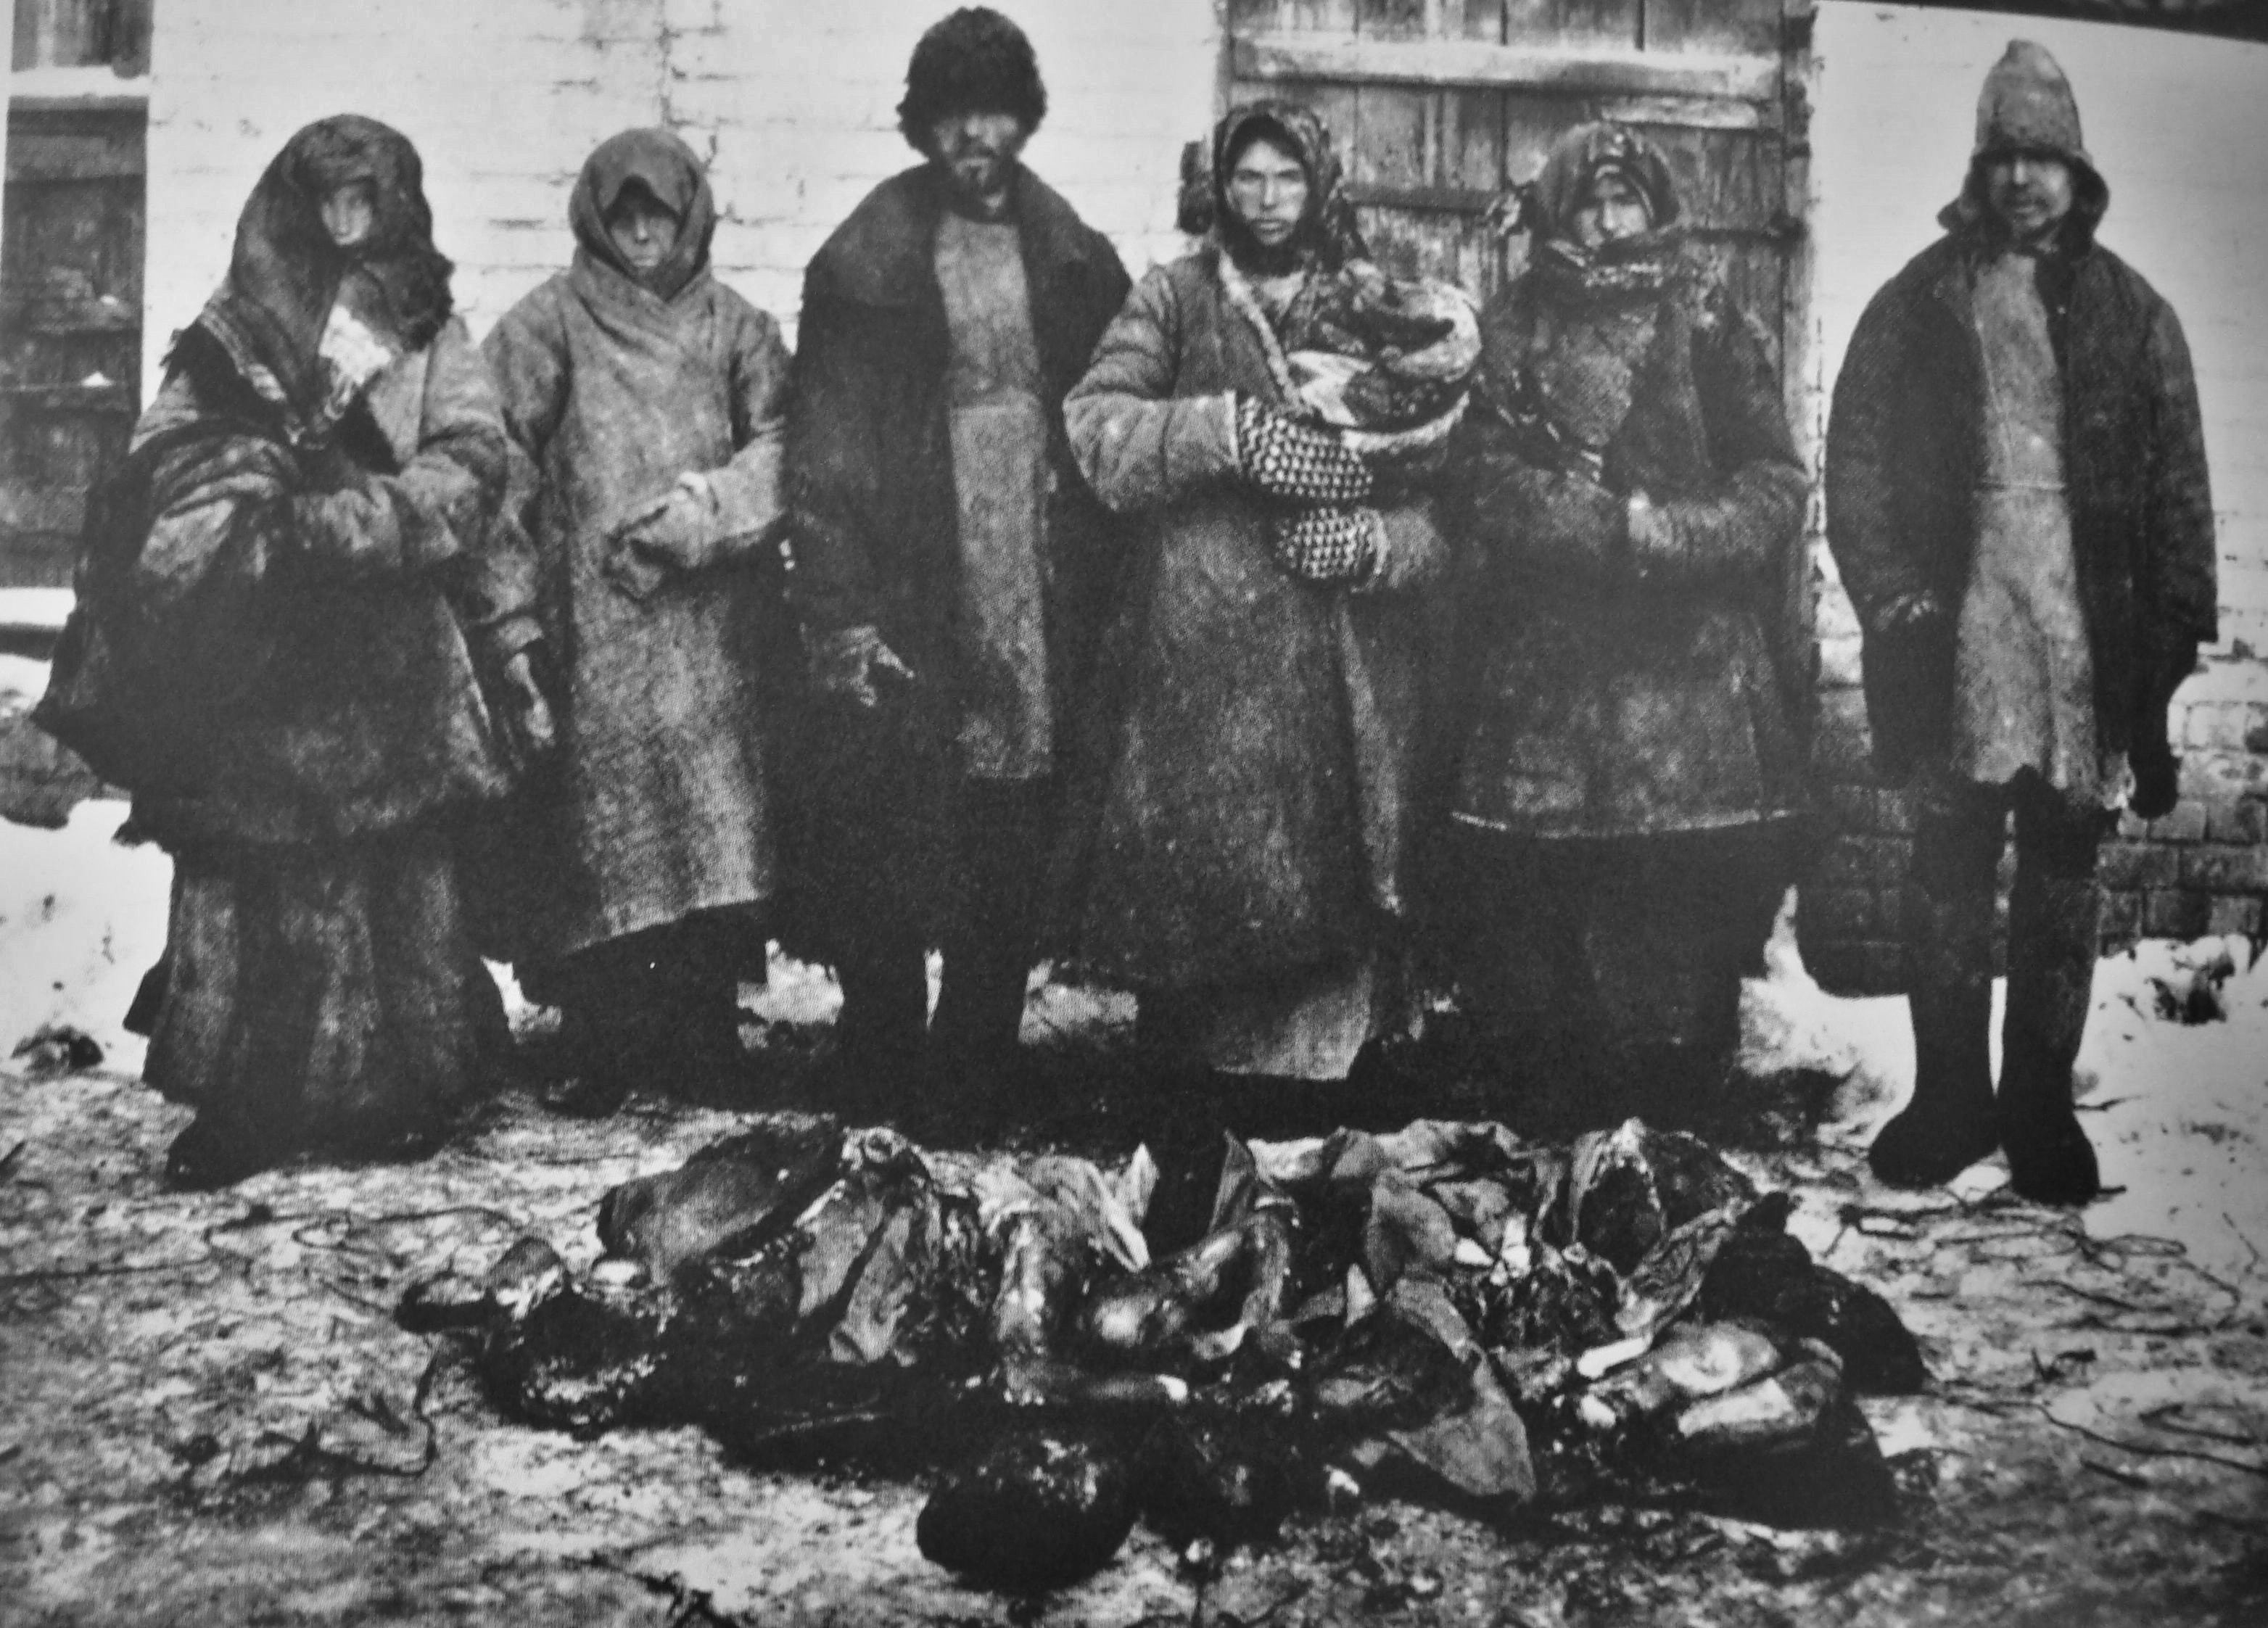 Peasants stand in front of human remains. Cannibalism was widespread during the Russian famine between 1921 and 1922. (Creative Commons/Wikimedia)